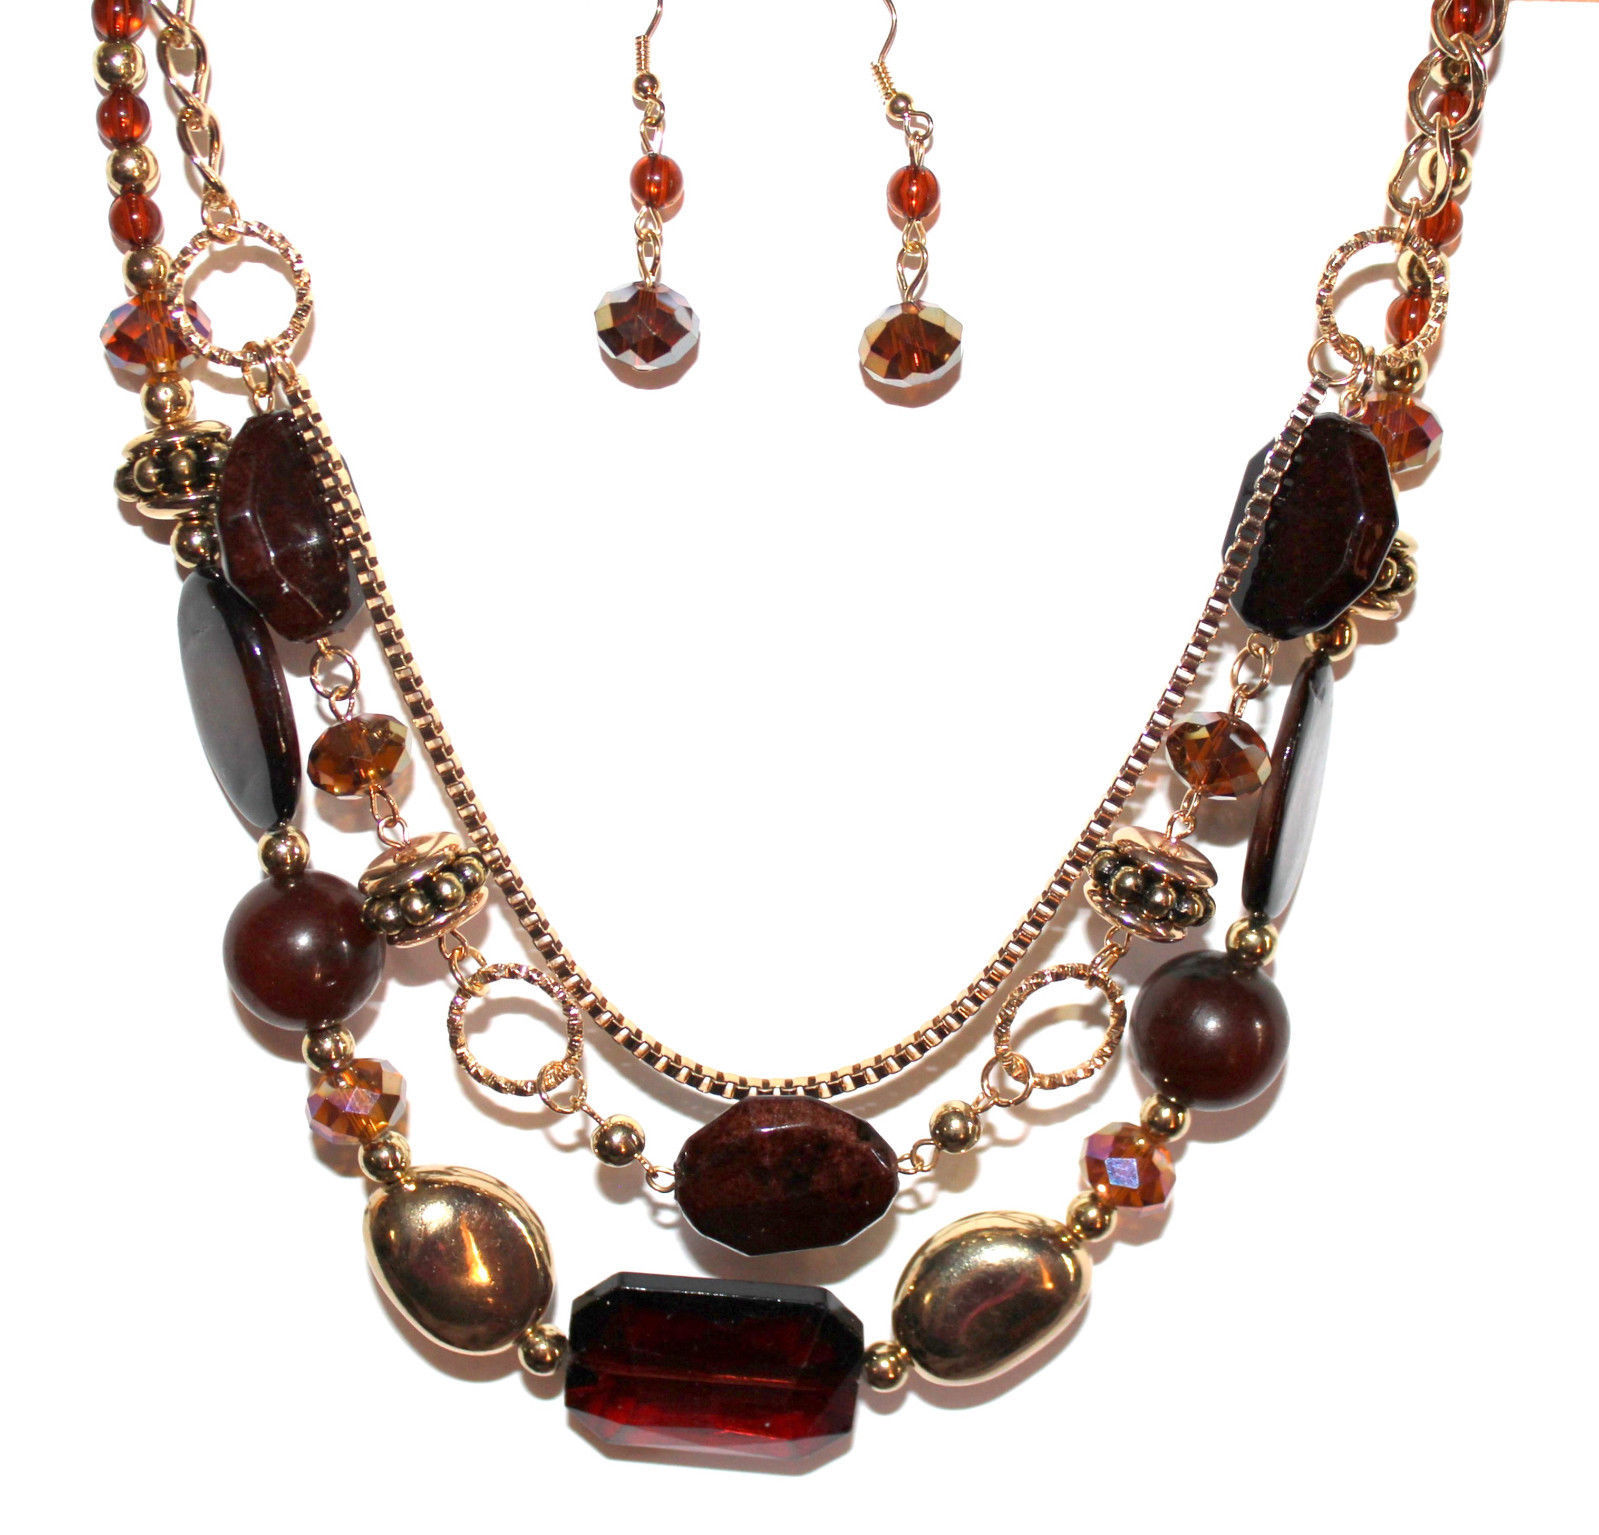 Primary image for Gold Tone Brown Crystal Multi Layer Strand Beaded Autumn Topaz AB Necklace Set